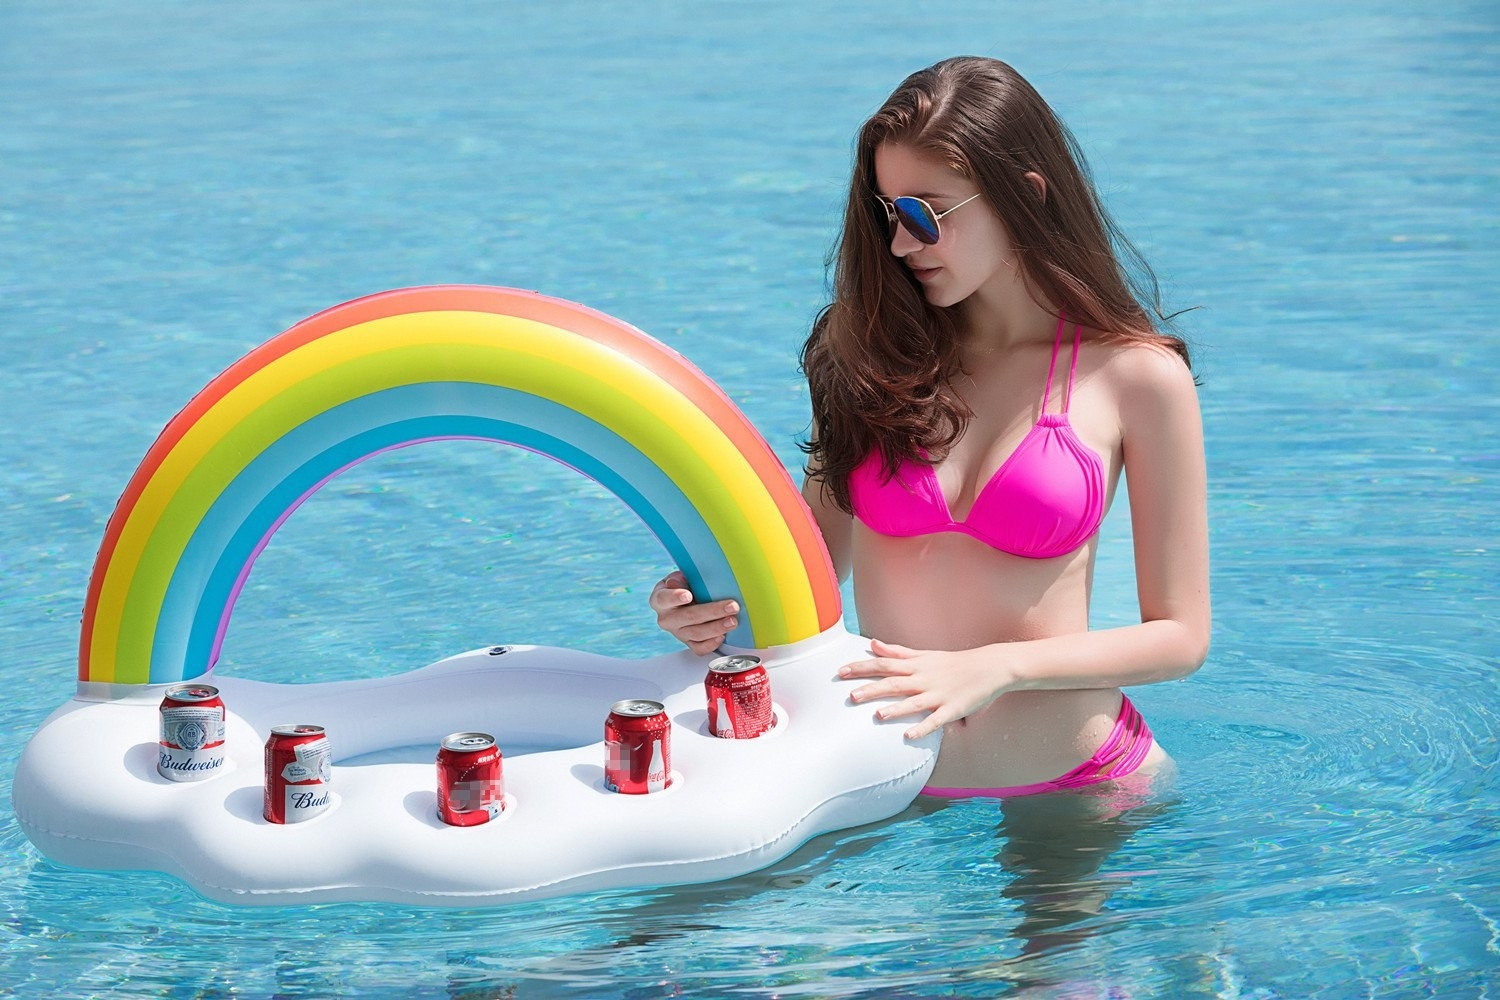 a model in the pool holding on to the floating bar that is shaped like a rainbow with a cloud to hold drinks